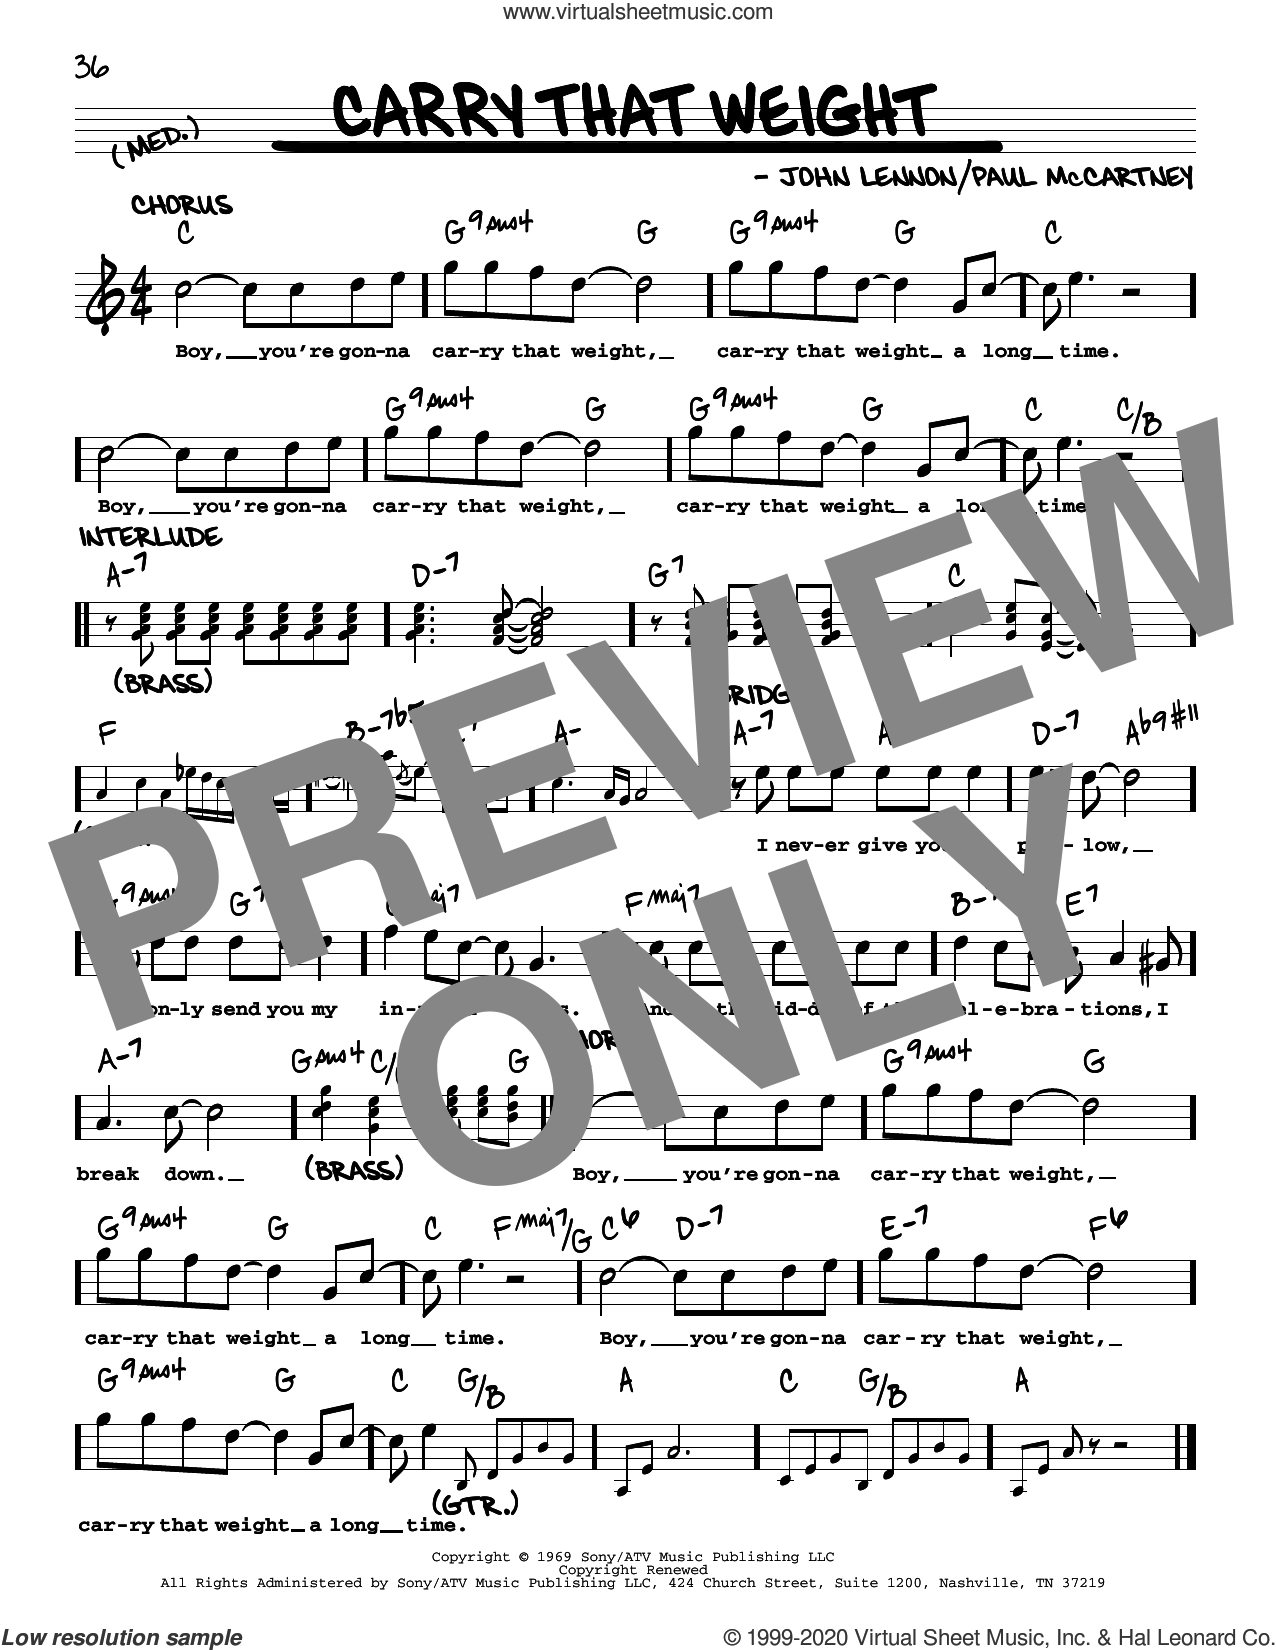 Carry That Weight [Jazz version] sheet music for voice and other instruments (real book with lyrics) by The Beatles, John Lennon and Paul McCartney, intermediate skill level